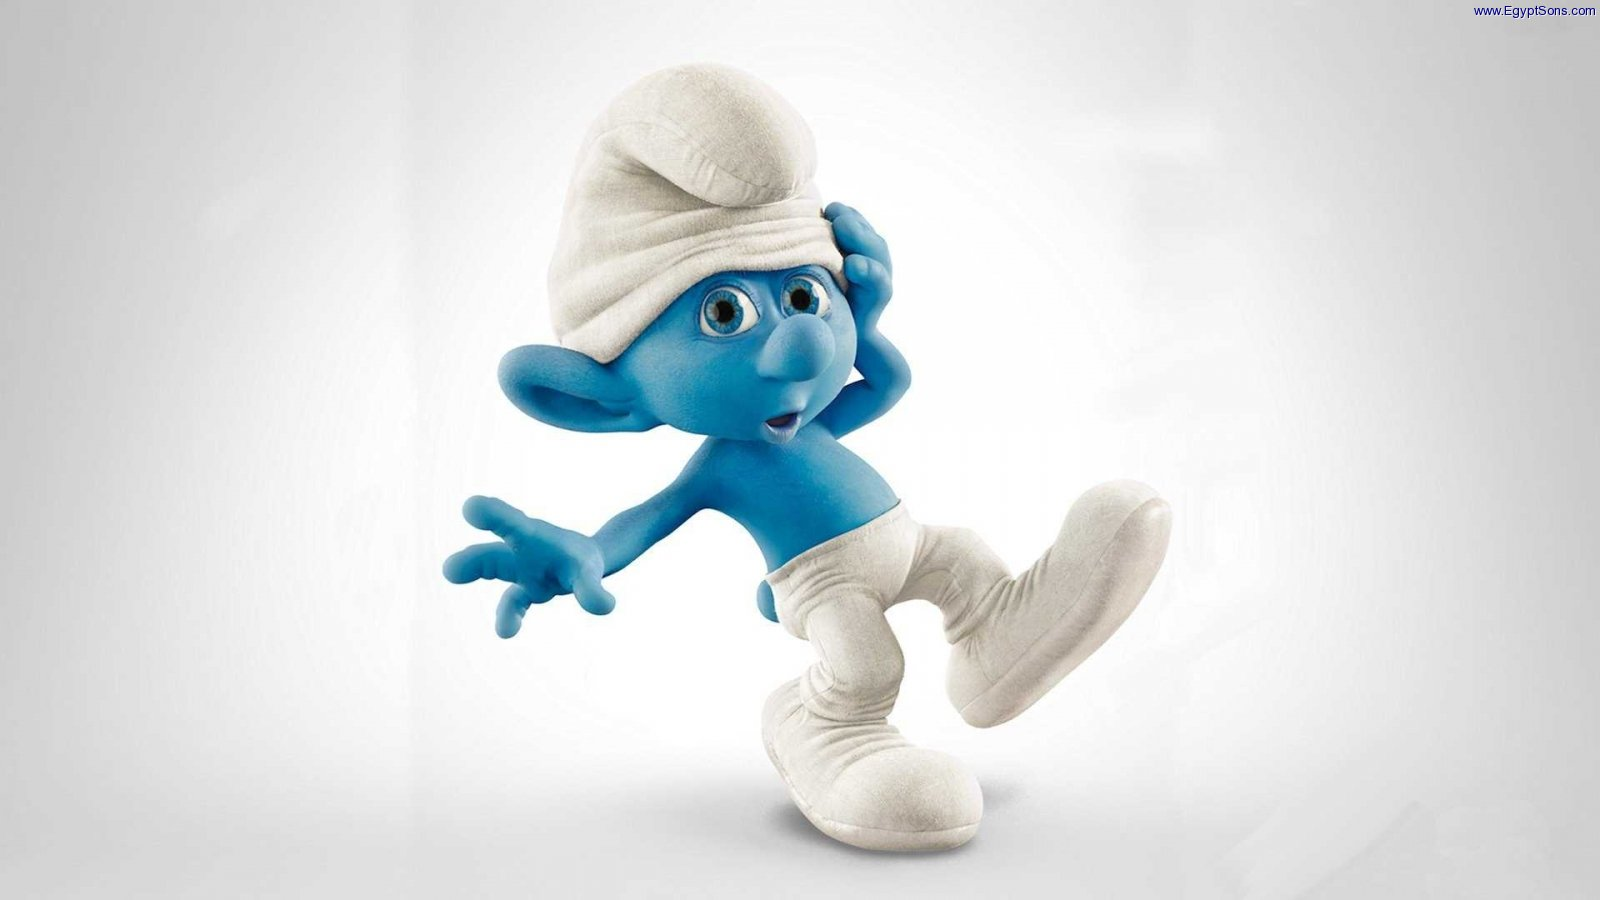 Clumsy Smurf Widescreen Wallpaper